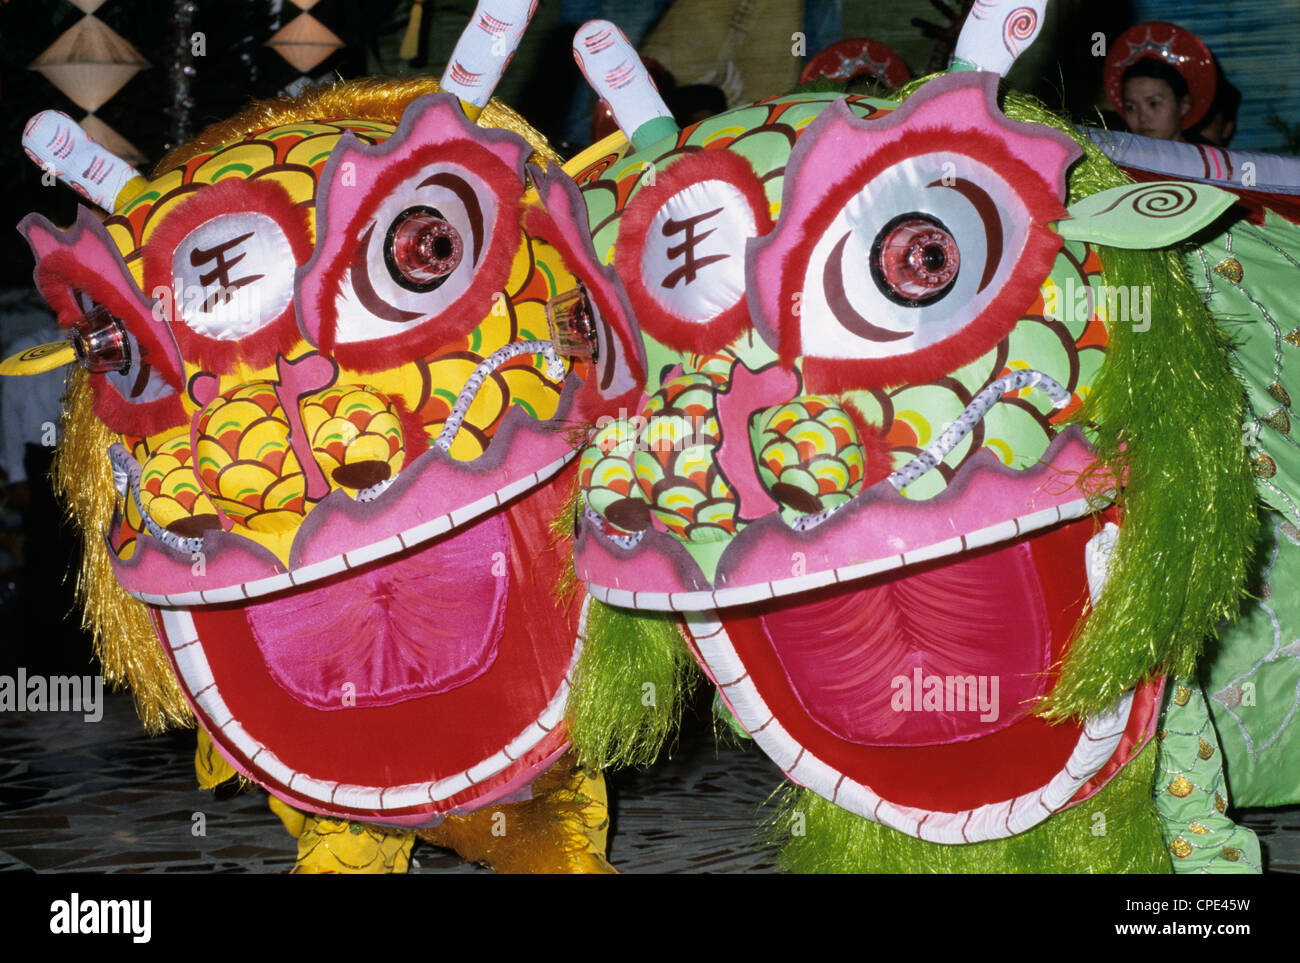 Chinese dragon dance at Chinese New Year celebrations, Vietnam, Indochina, Southeast Asia, Asia - Stock Image